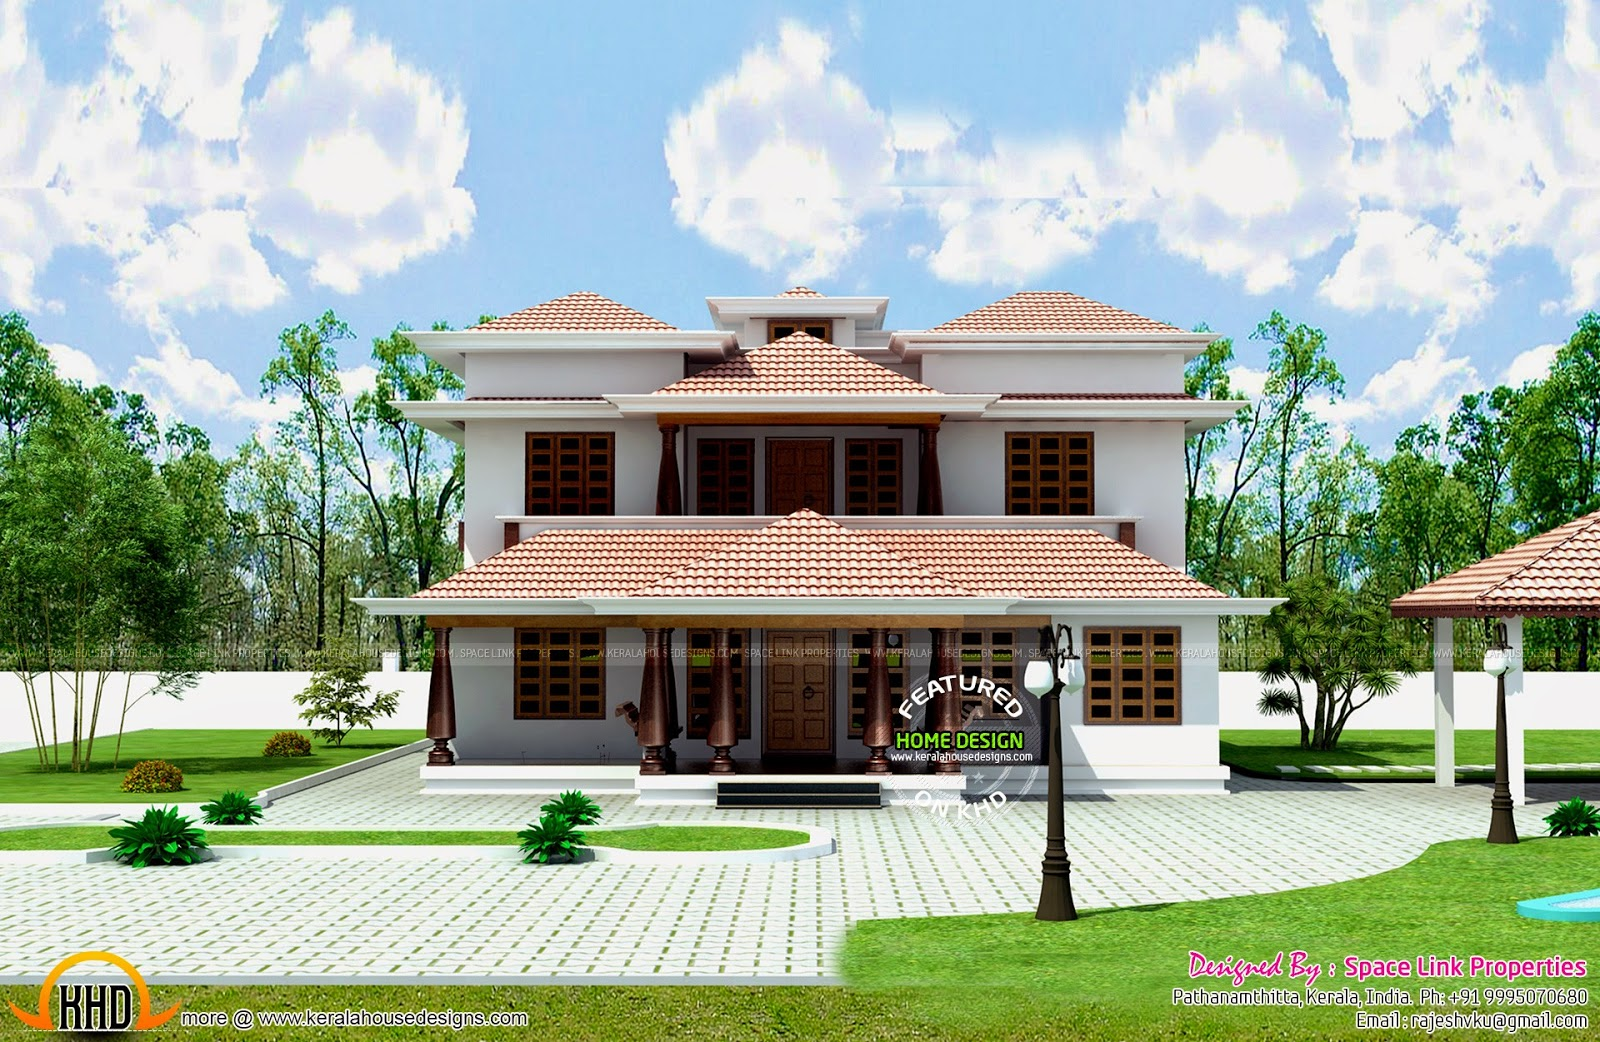 Typical kerala traditional house kerala home design and for Kerala style 2 bedroom house plans